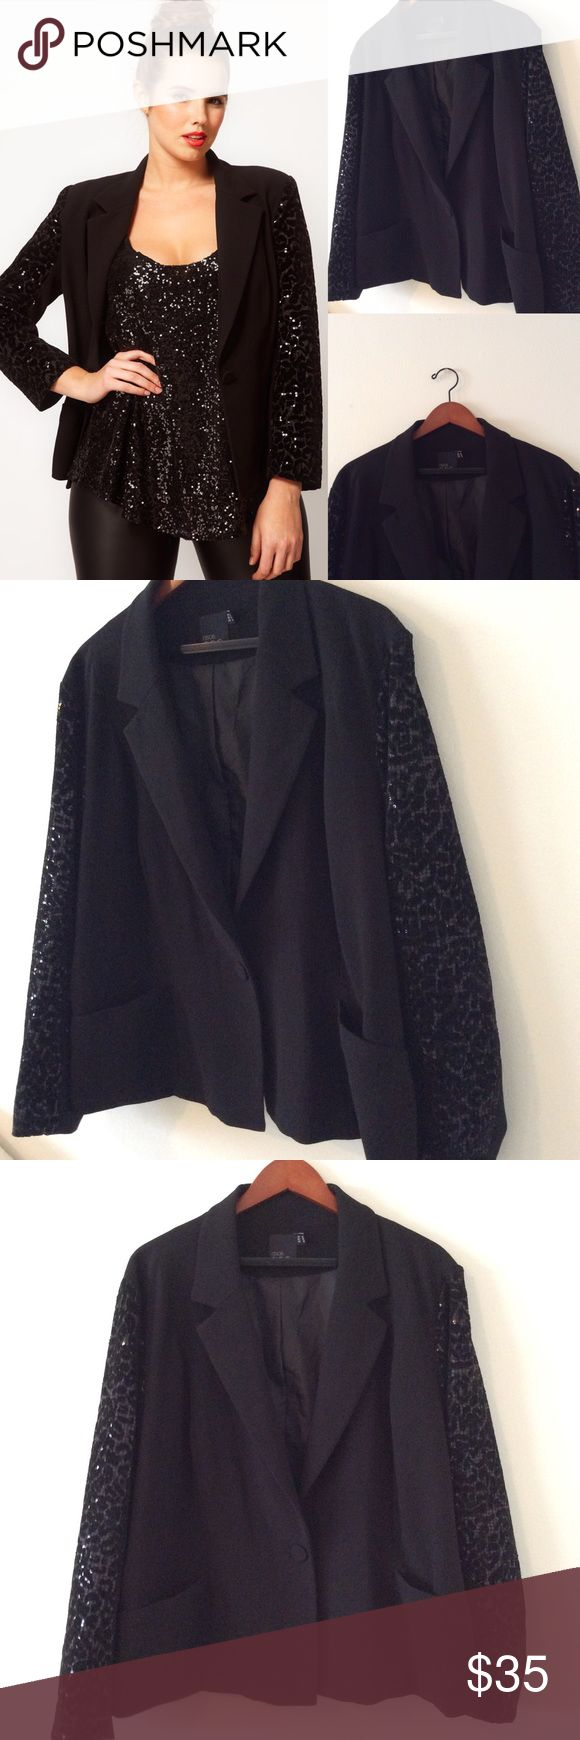 Asos Curve Sequin Leopard Sleeve Blazer 18 Size 18 lined Blazer. Asos curve. Single button front. The button will need to reinforced and there's also an extra button inside. Small thread snag on the front but barely noticeable. ASOS Curve Jackets & Coats Blazers